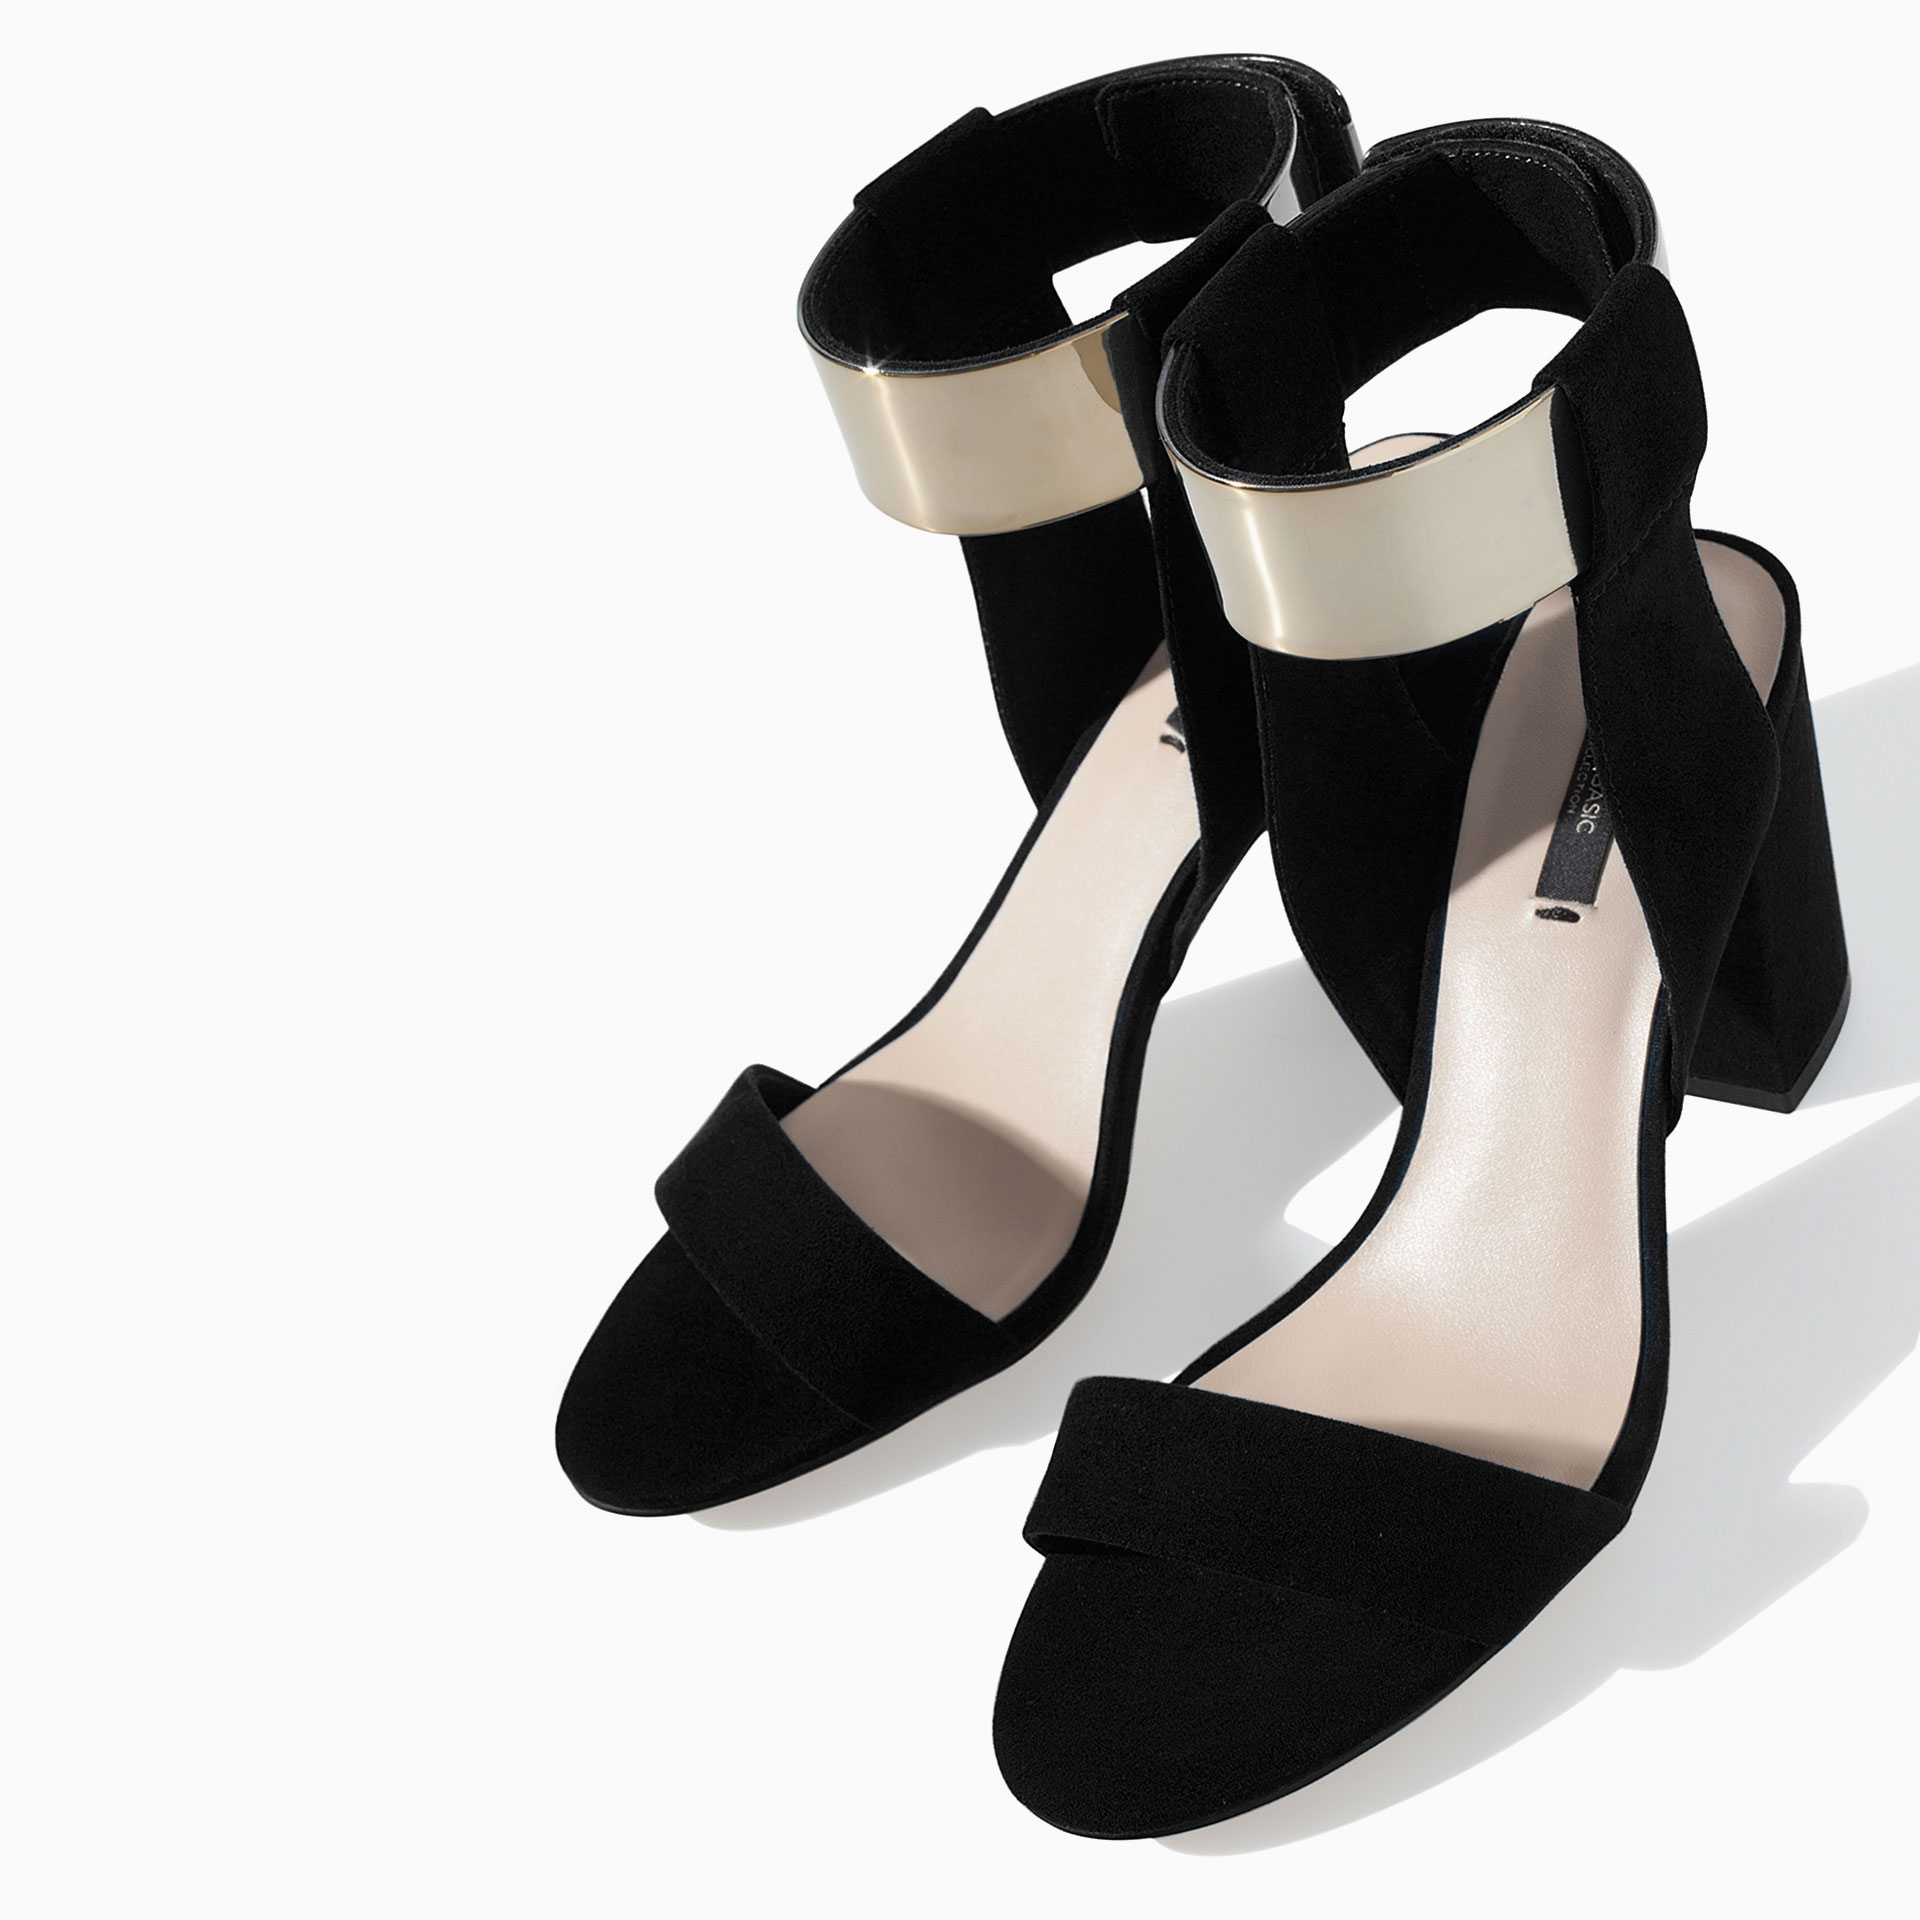 2014 Women Shoes High Heels Summer Geniue Leather Open Toe Sandals Round Square Thick Heel Black blue Pumps - Gold Coast store